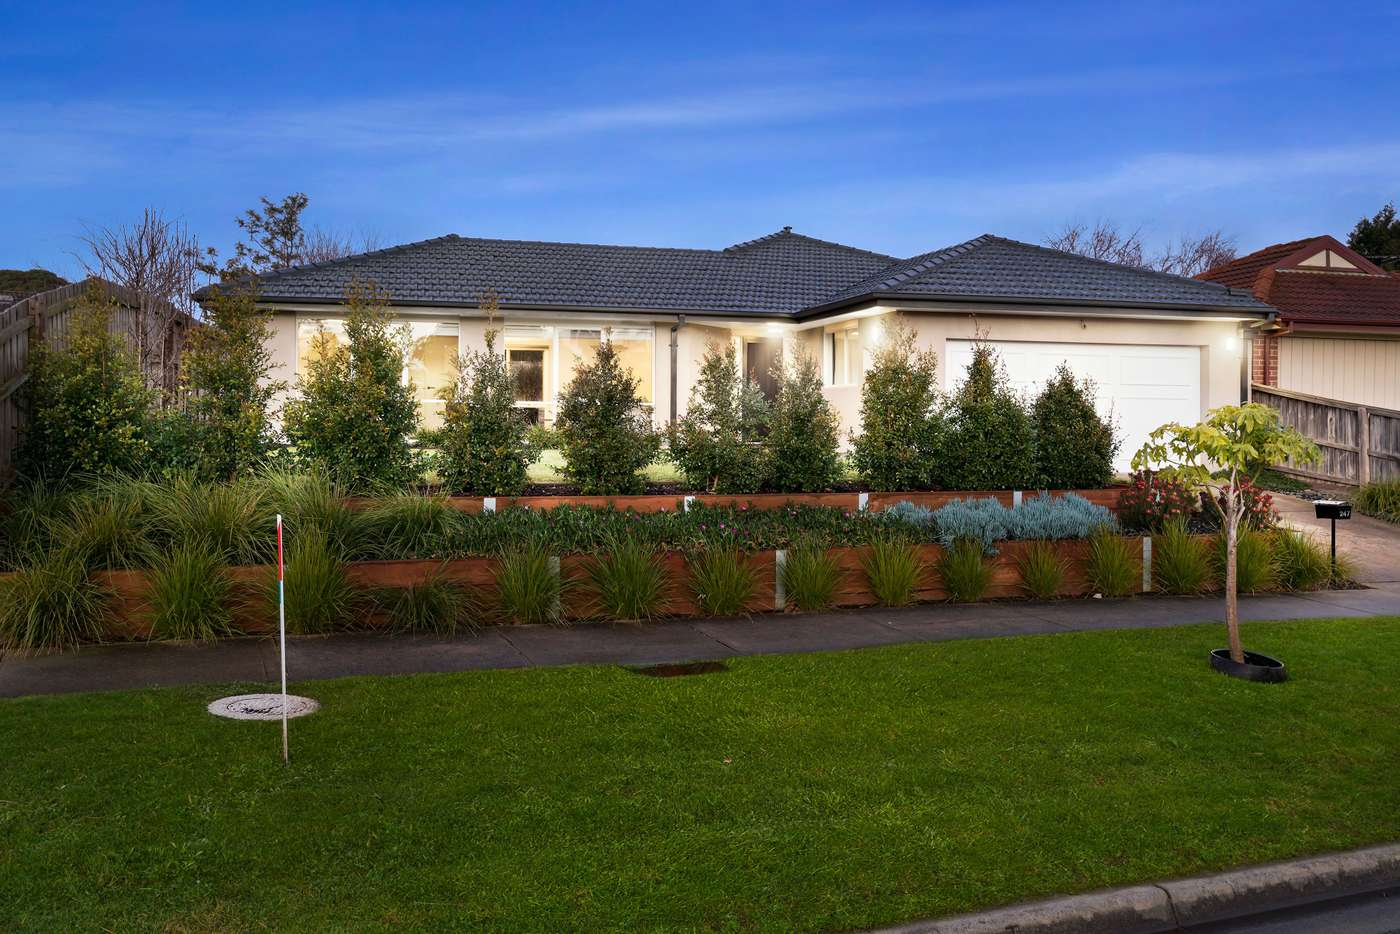 Main view of Homely house listing, 247 Heatherhill Road, Frankston VIC 3199